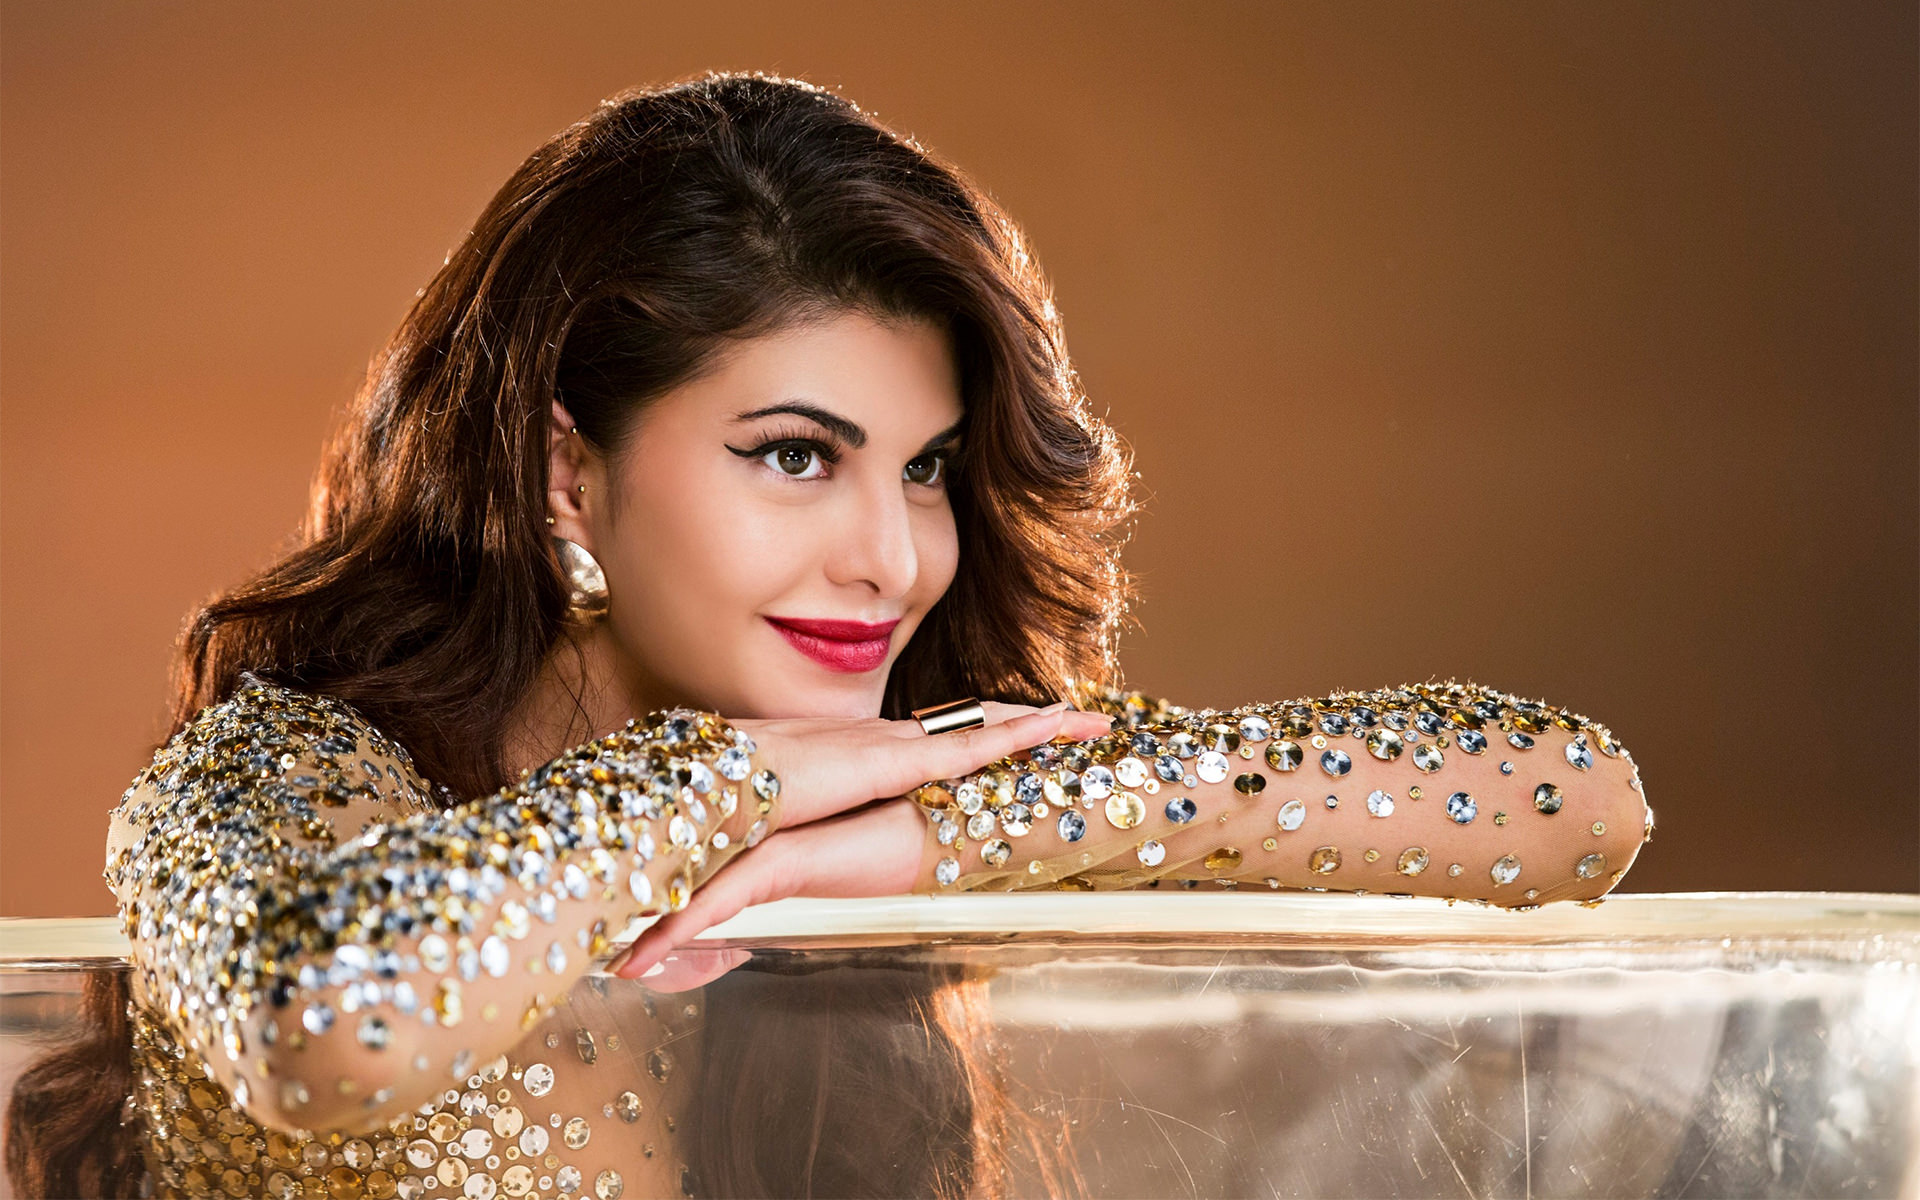 jacqueline fernandez wallpaper hd | hd wallpaper background